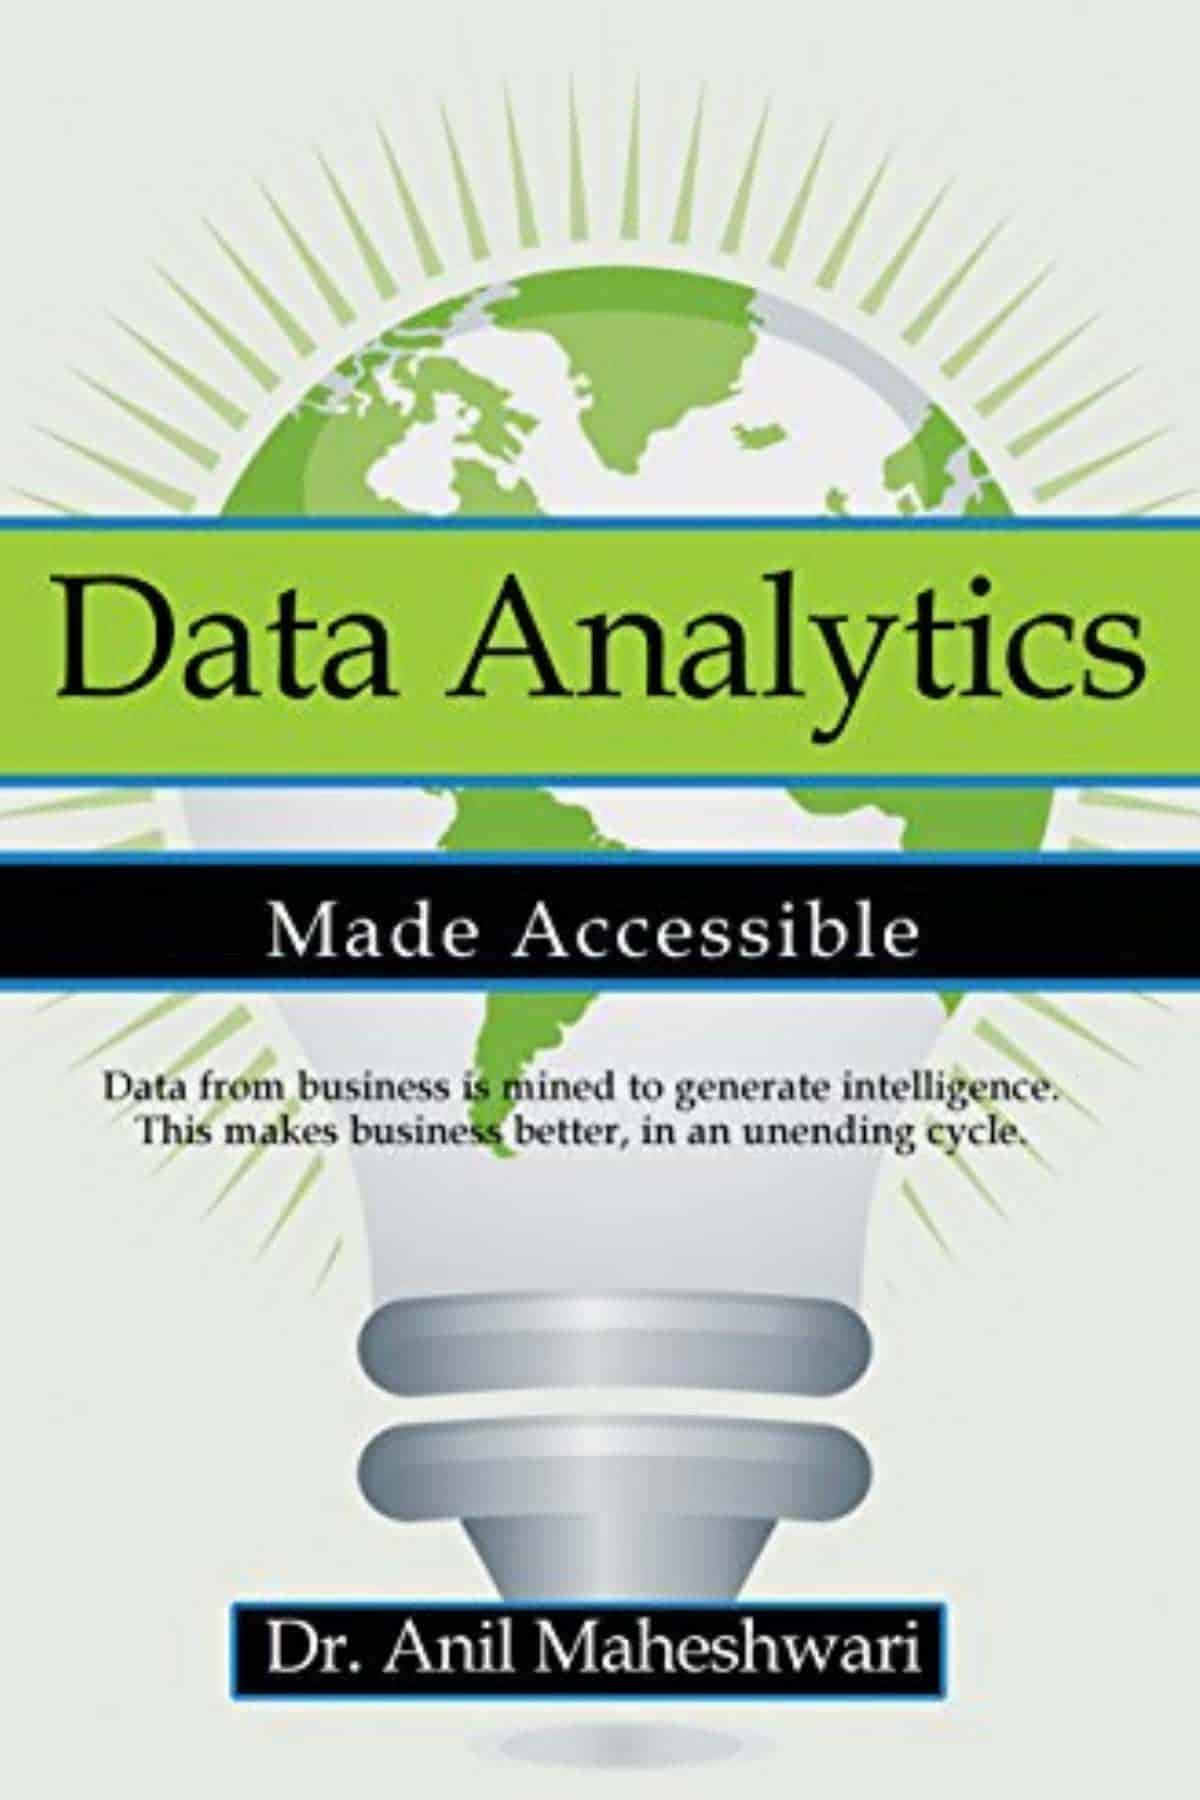 Data Analytics Made Accessible by Anil Maheshwari ($9.99) | Amazon's Best Selling Tech Kindle eBooks